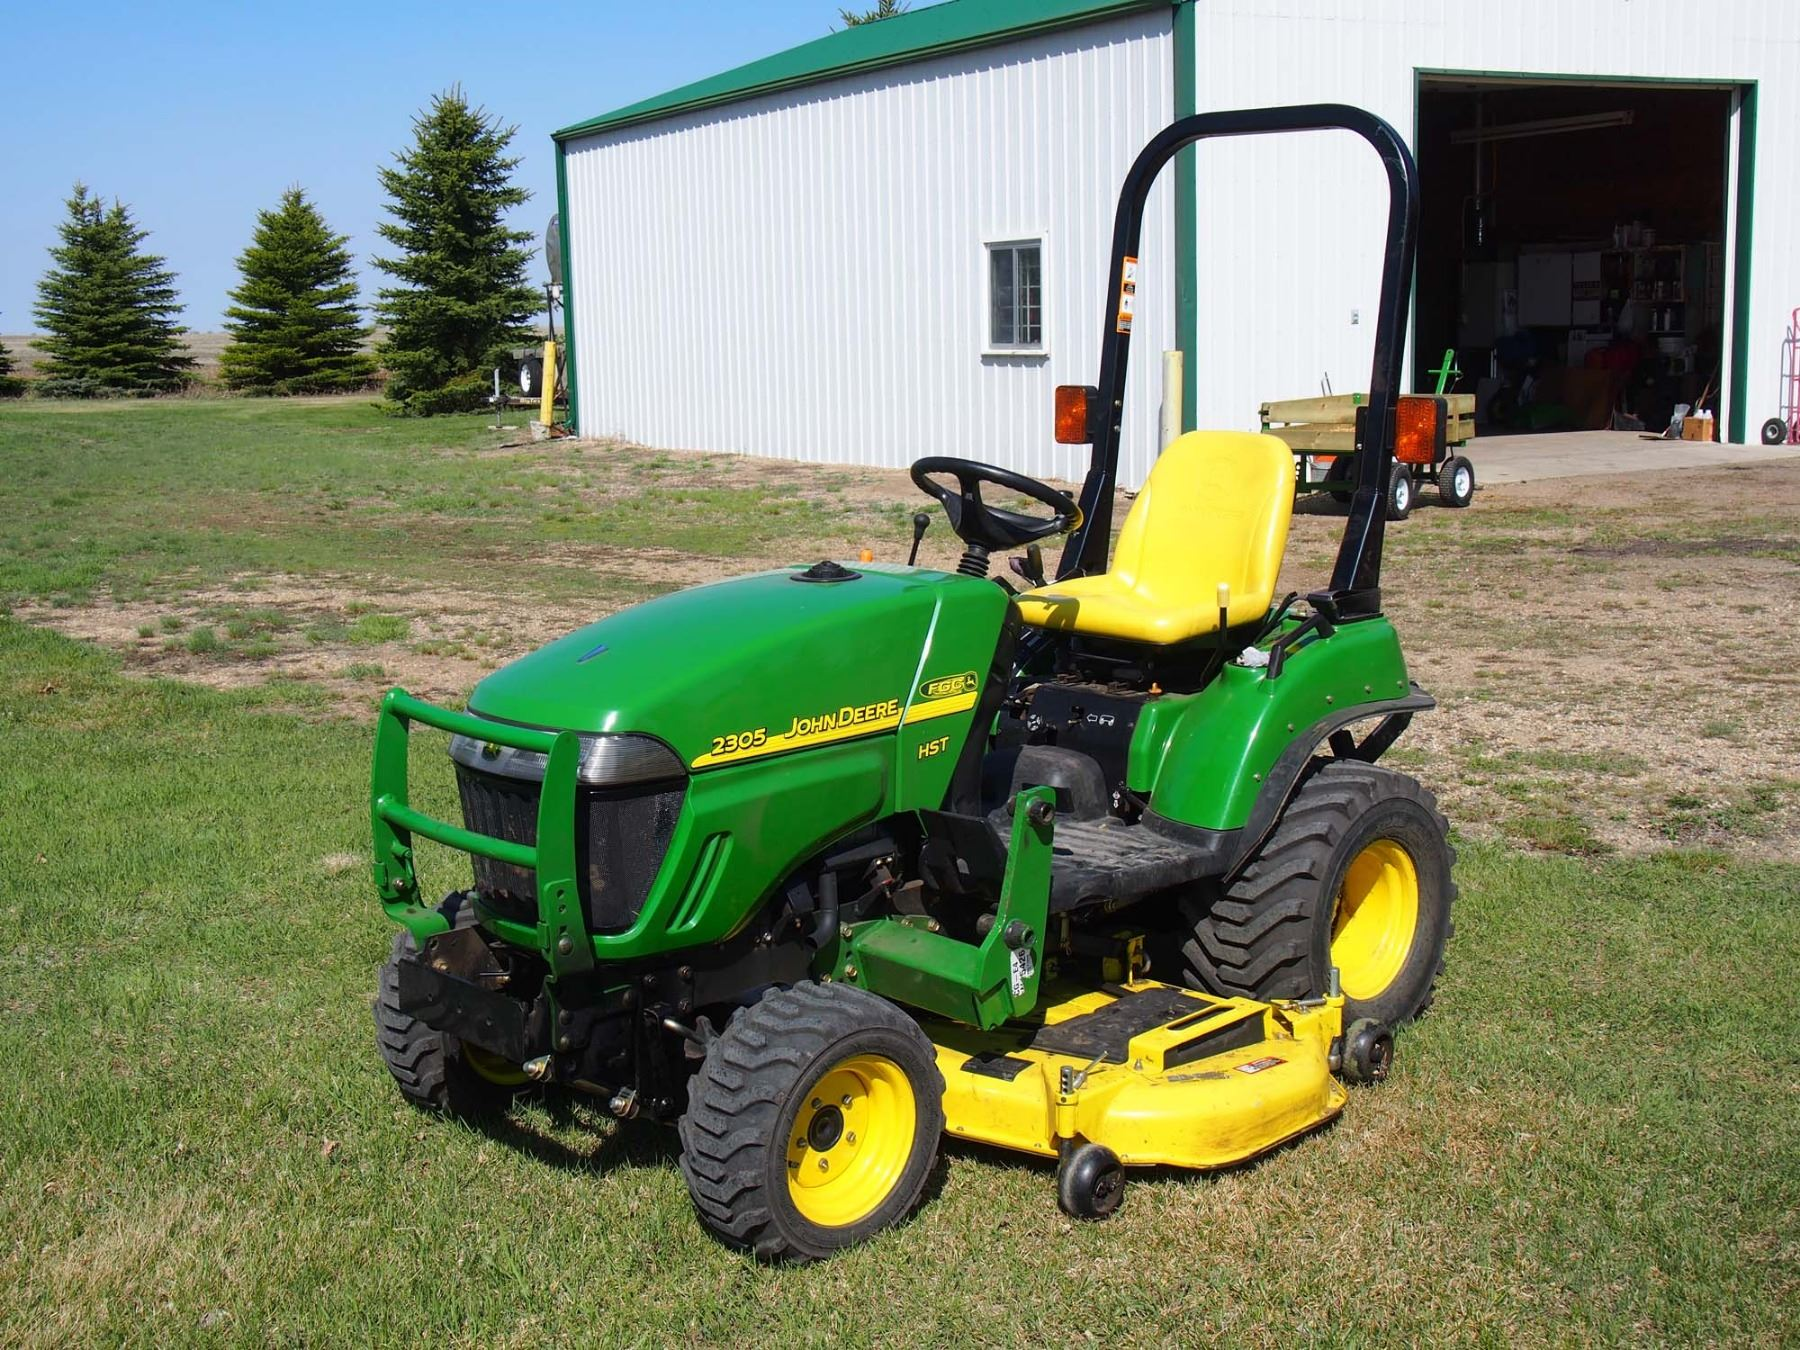 Video; Image 1 : 2007 John Deere 2305 HST MFWD W/ Mower Deck, 3PTH, ...